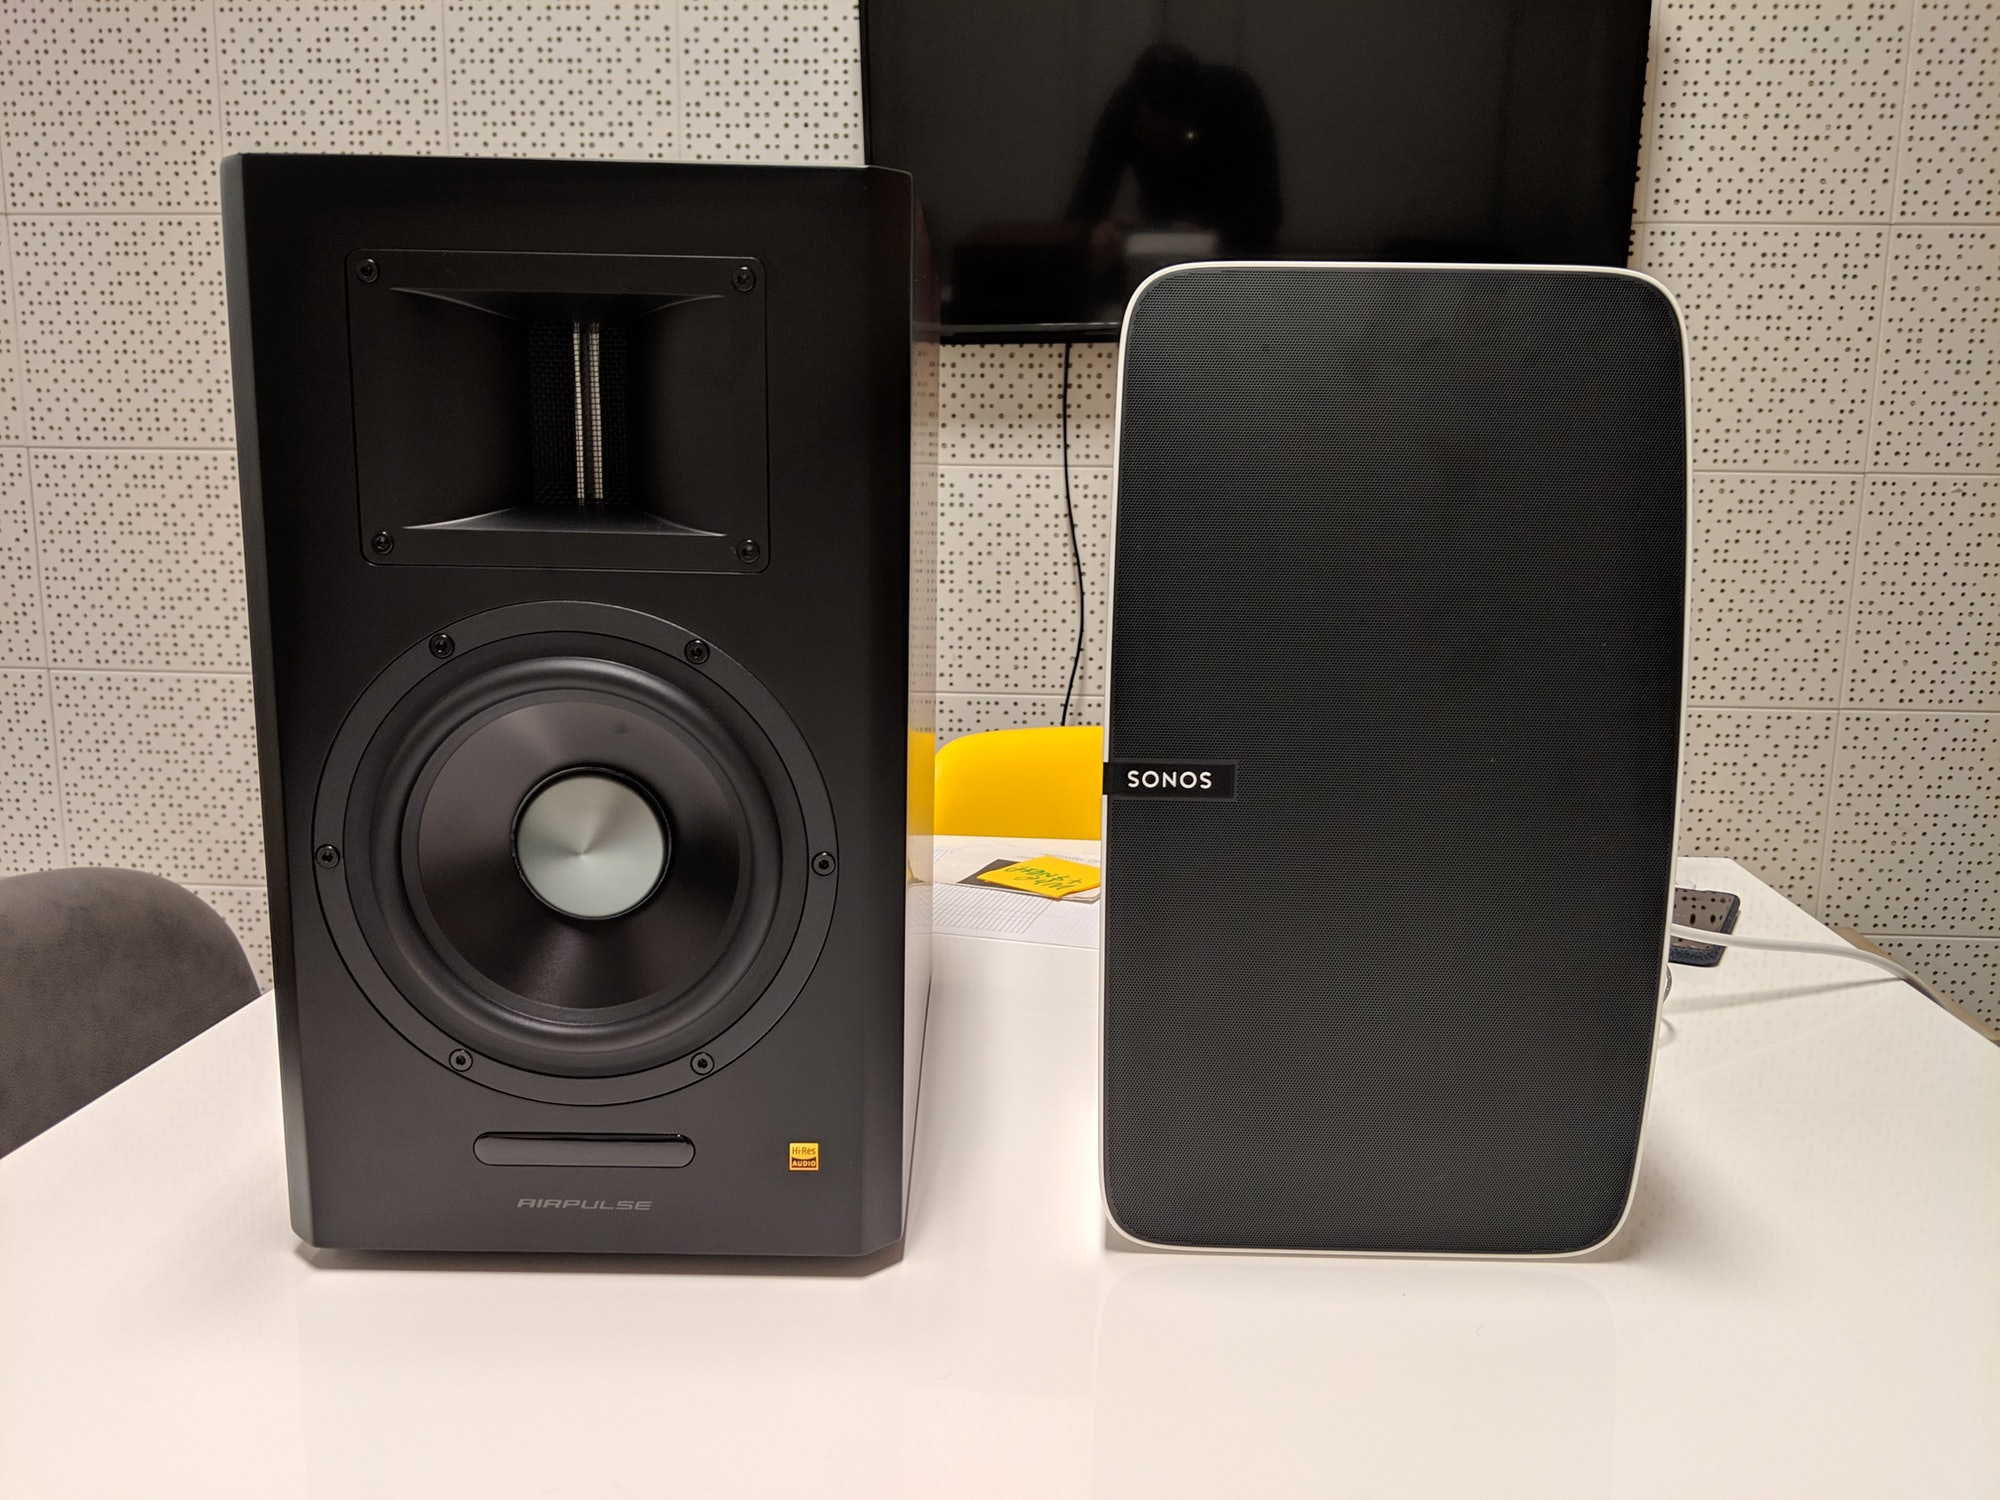 sonos airpulse speakers